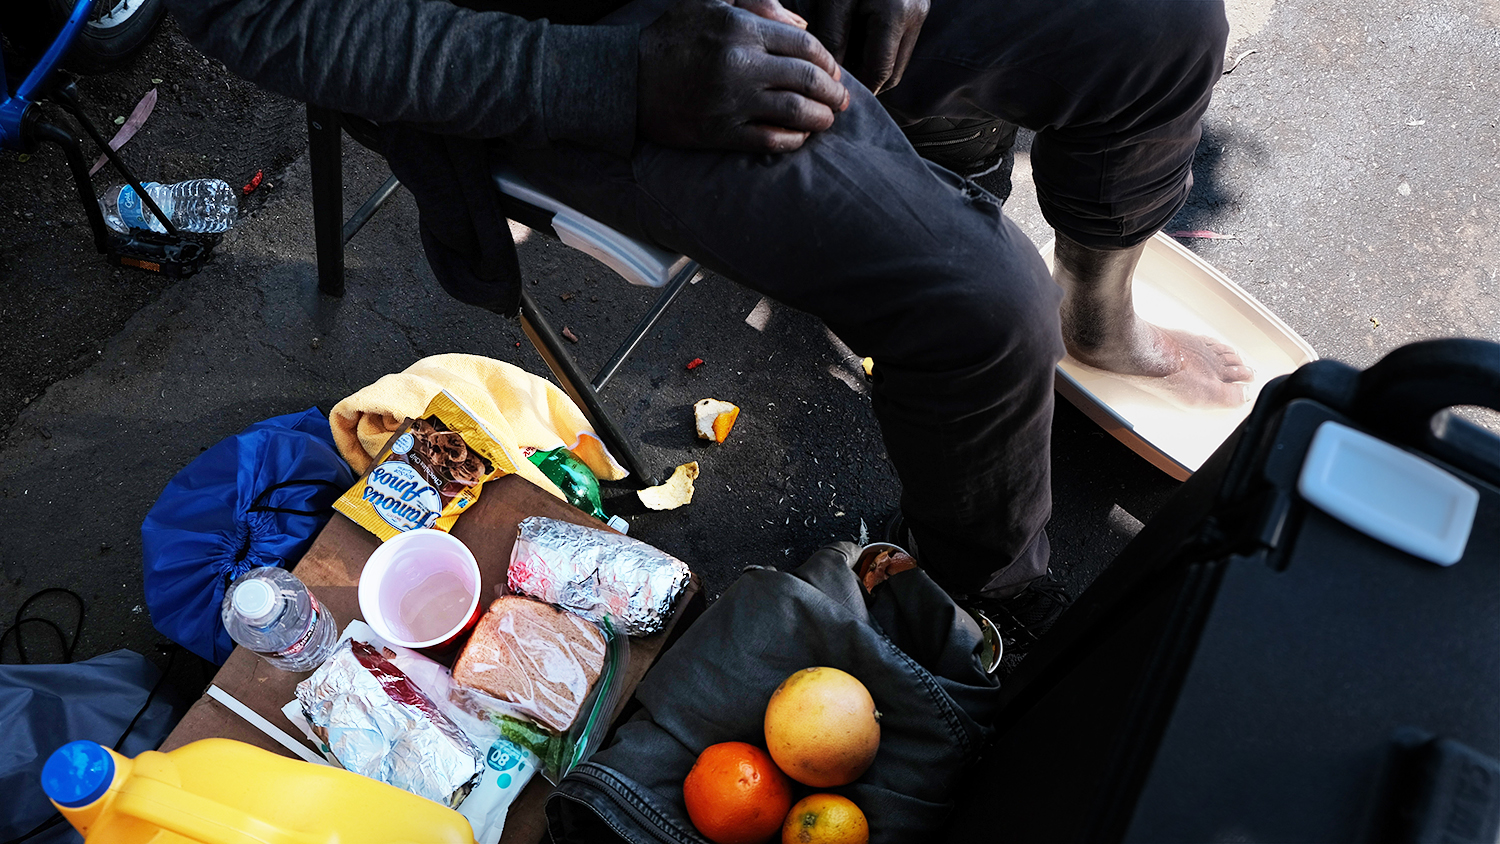 Charitable Deeds to Feed Homeless People Rouse Opposition Across Orange County